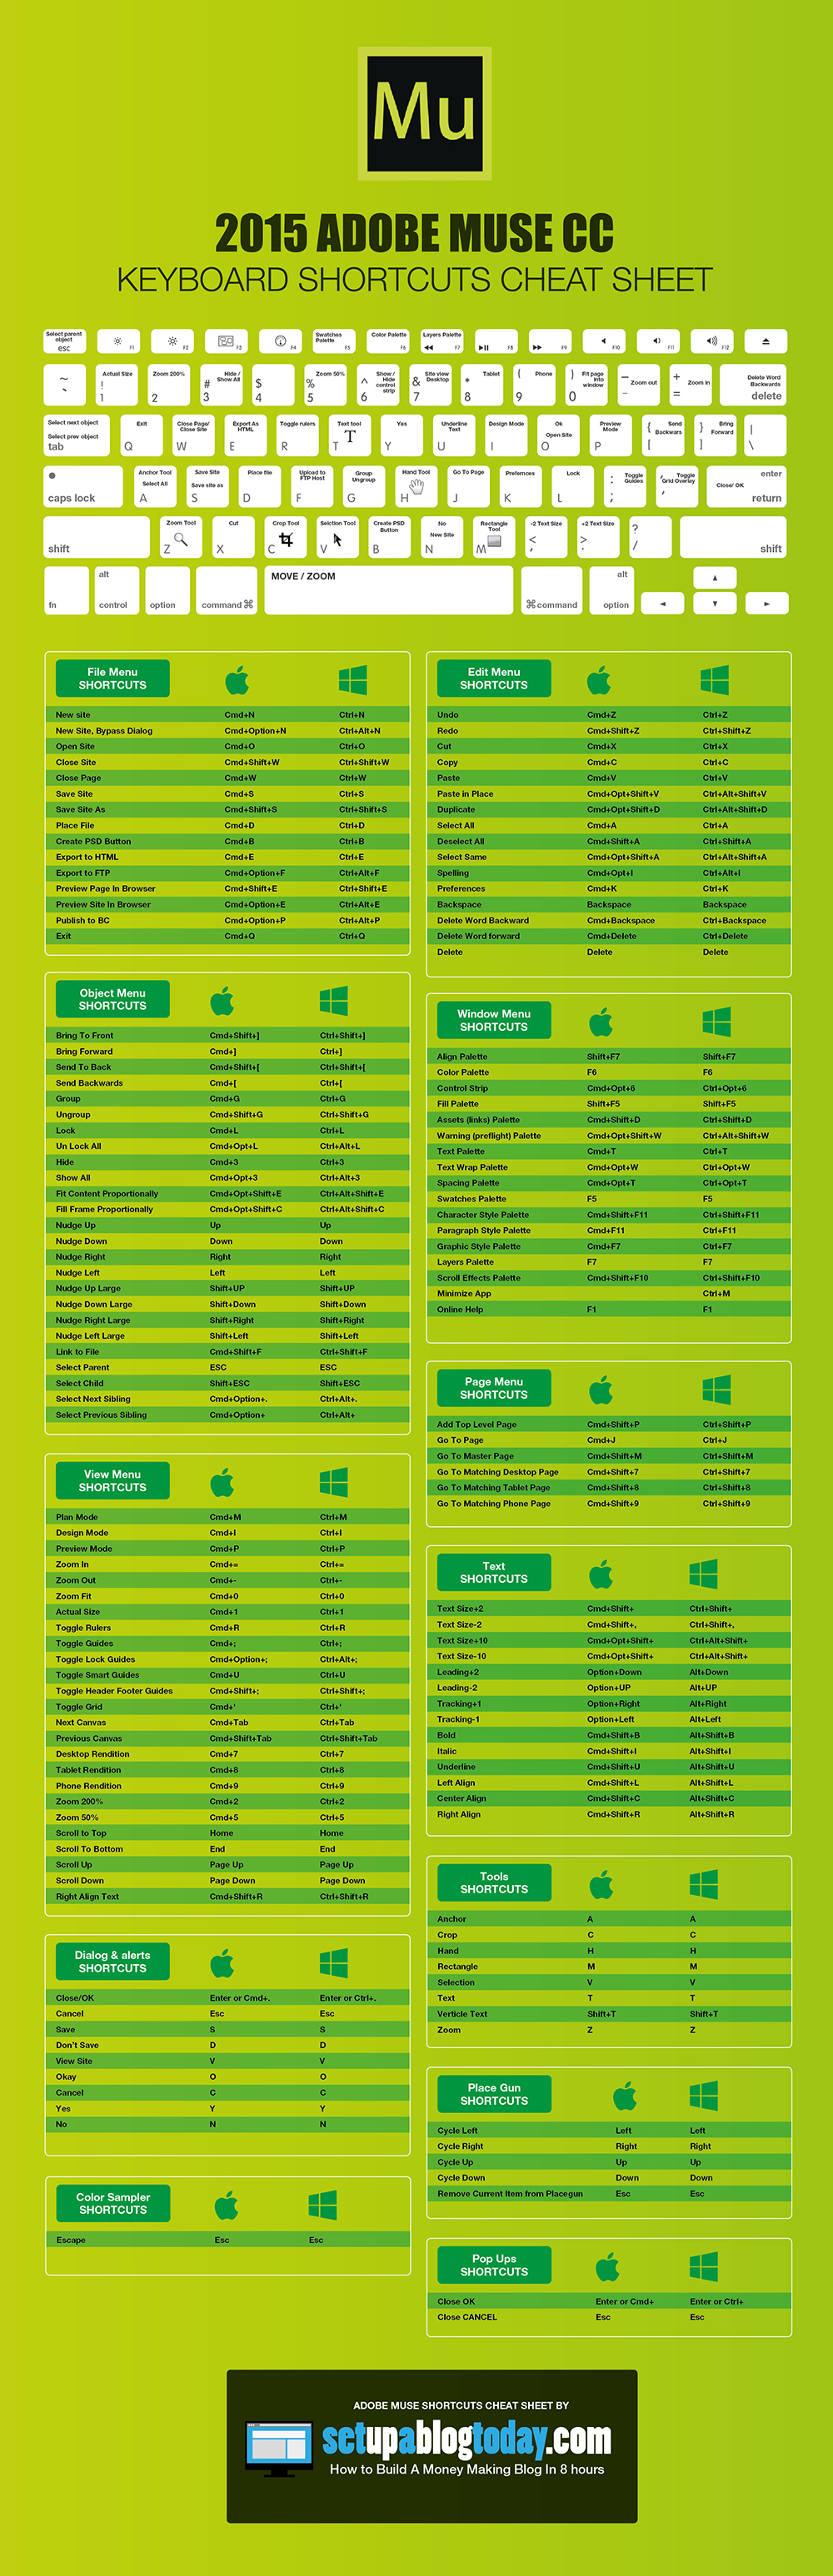 Adobe Muse CC Keyboard Shortcuts Cheat Sheet